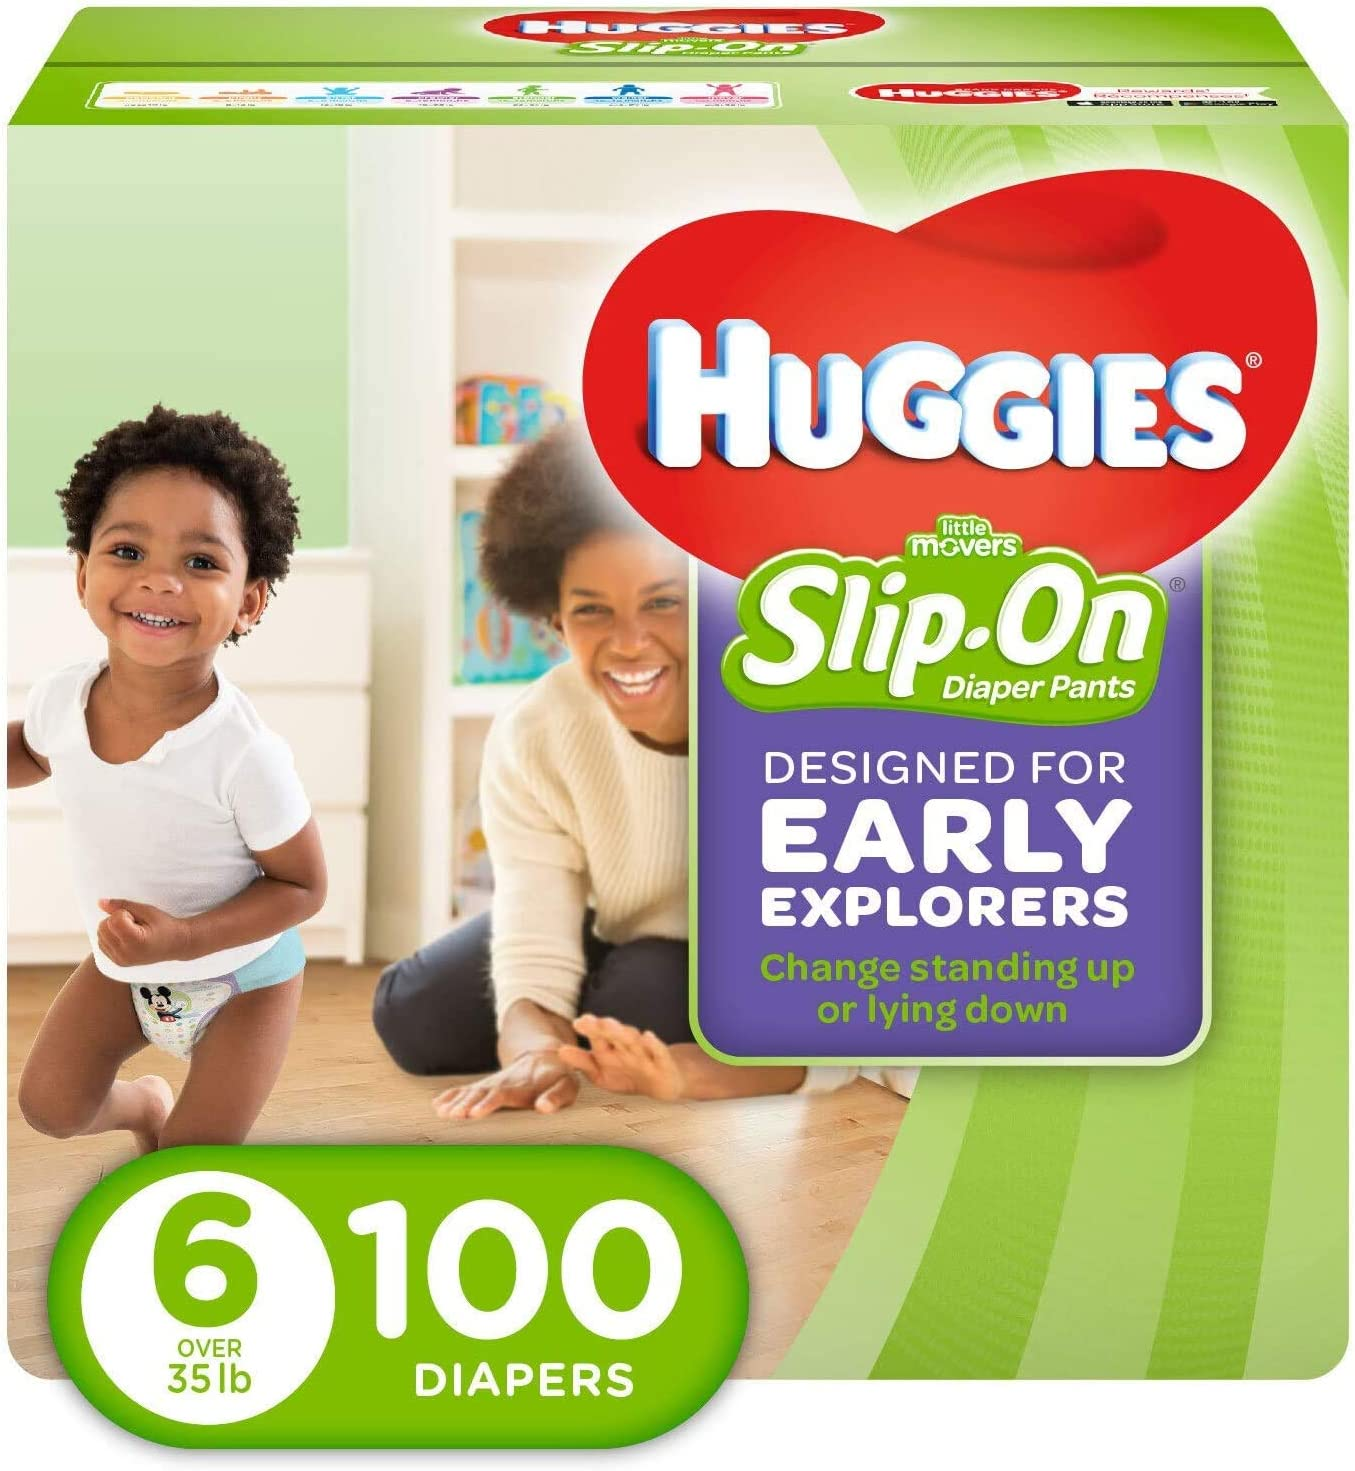 Huggies Little Movers Slip On Diaper Pants, Size 6, 100 Count, One Month Supply: Health & Personal Care